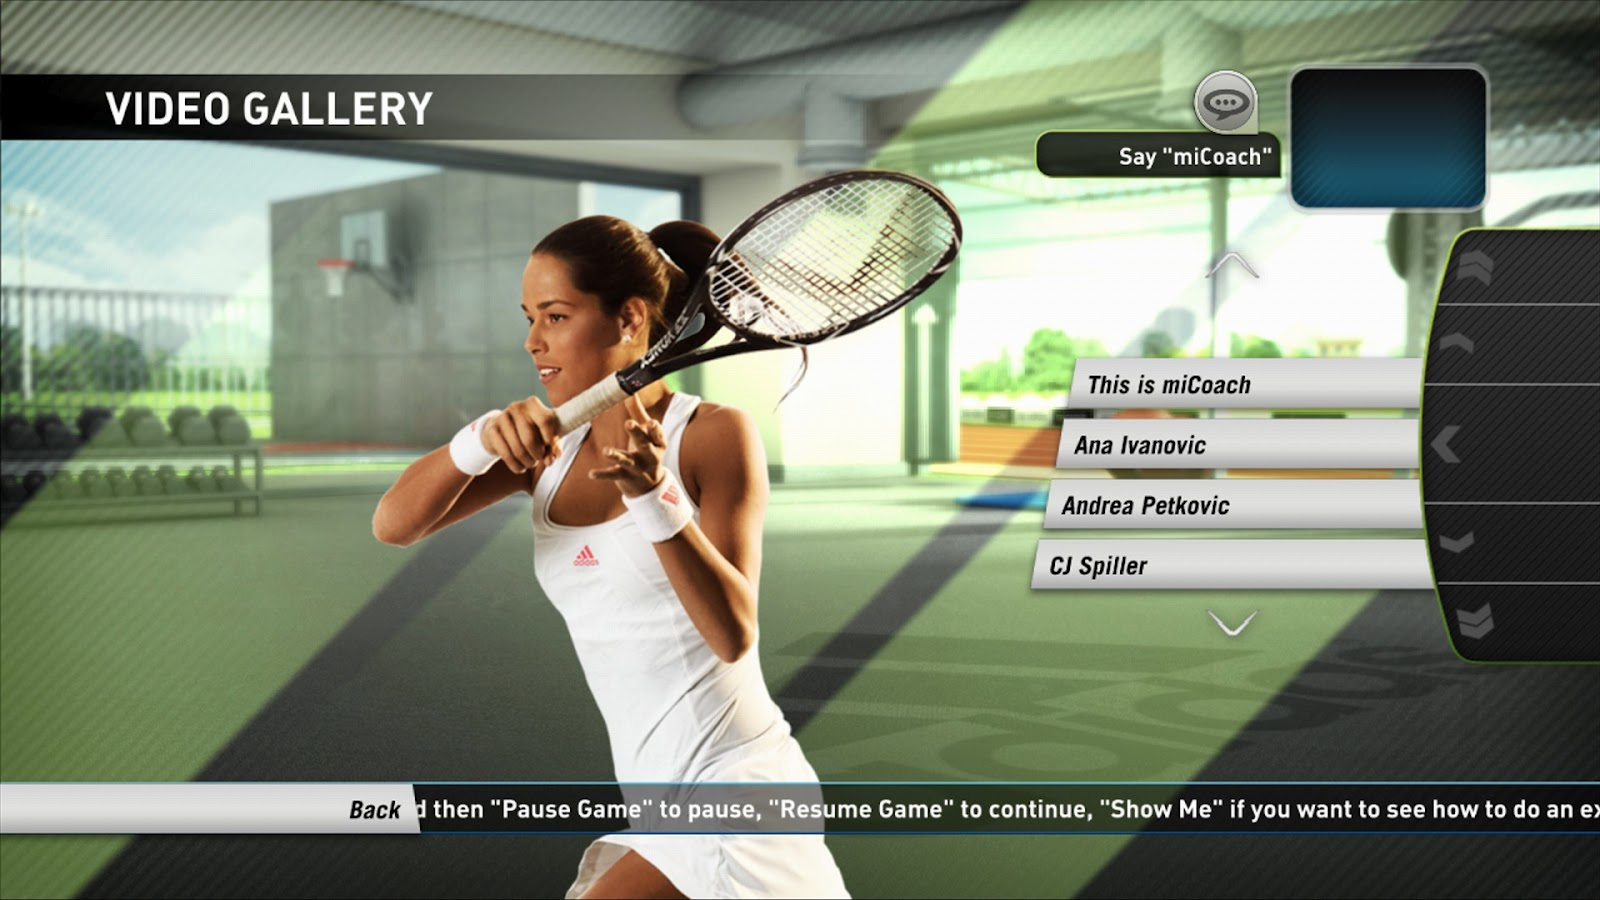 Adidas Micoach Is Aplete Sports Training System On Kinect For Xbox 360  And Move For Playstation 3 Designed To Take Performance To The Next Level,